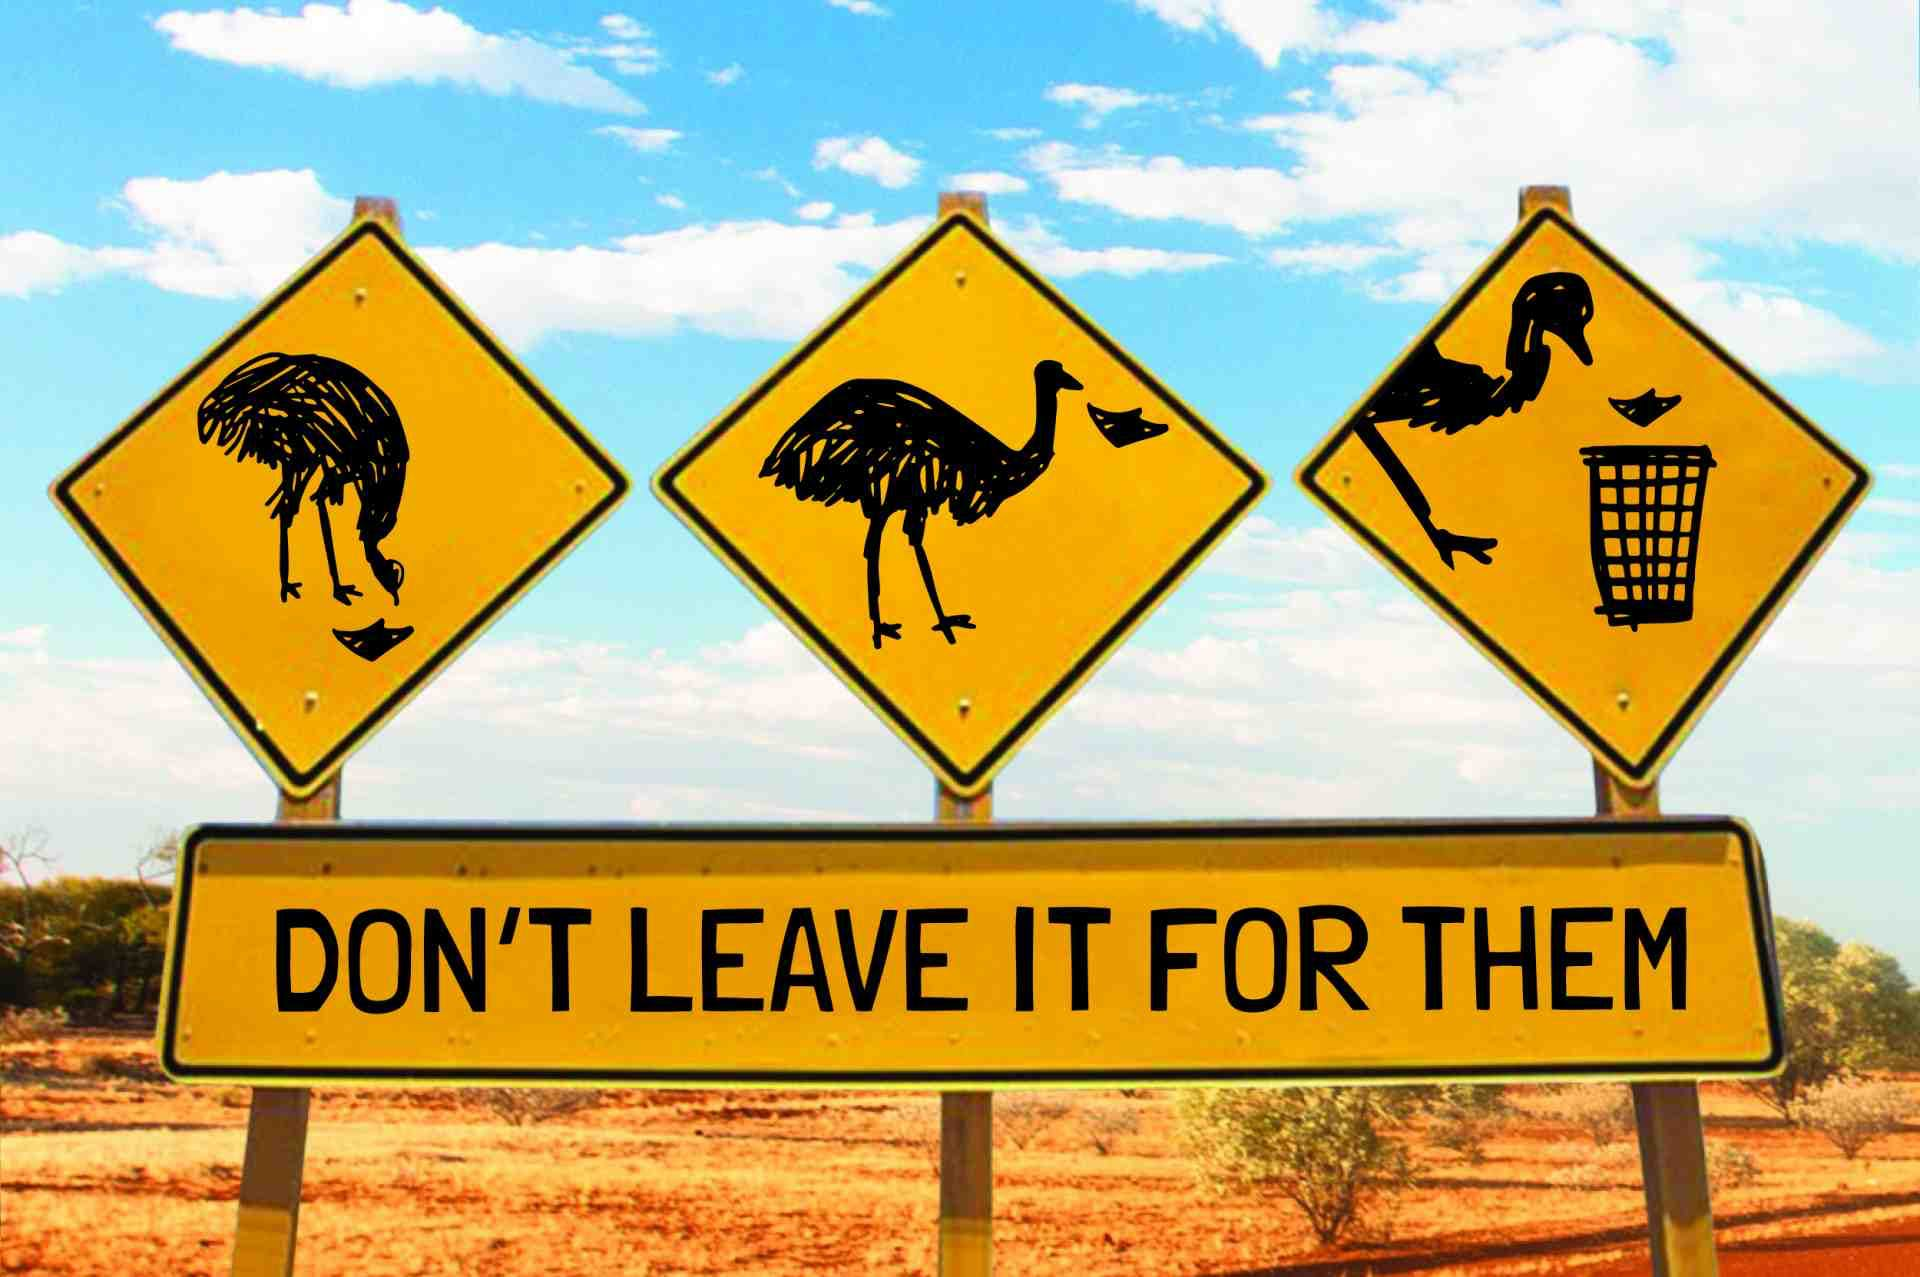 Aussie Travel Code Don't leave it for them